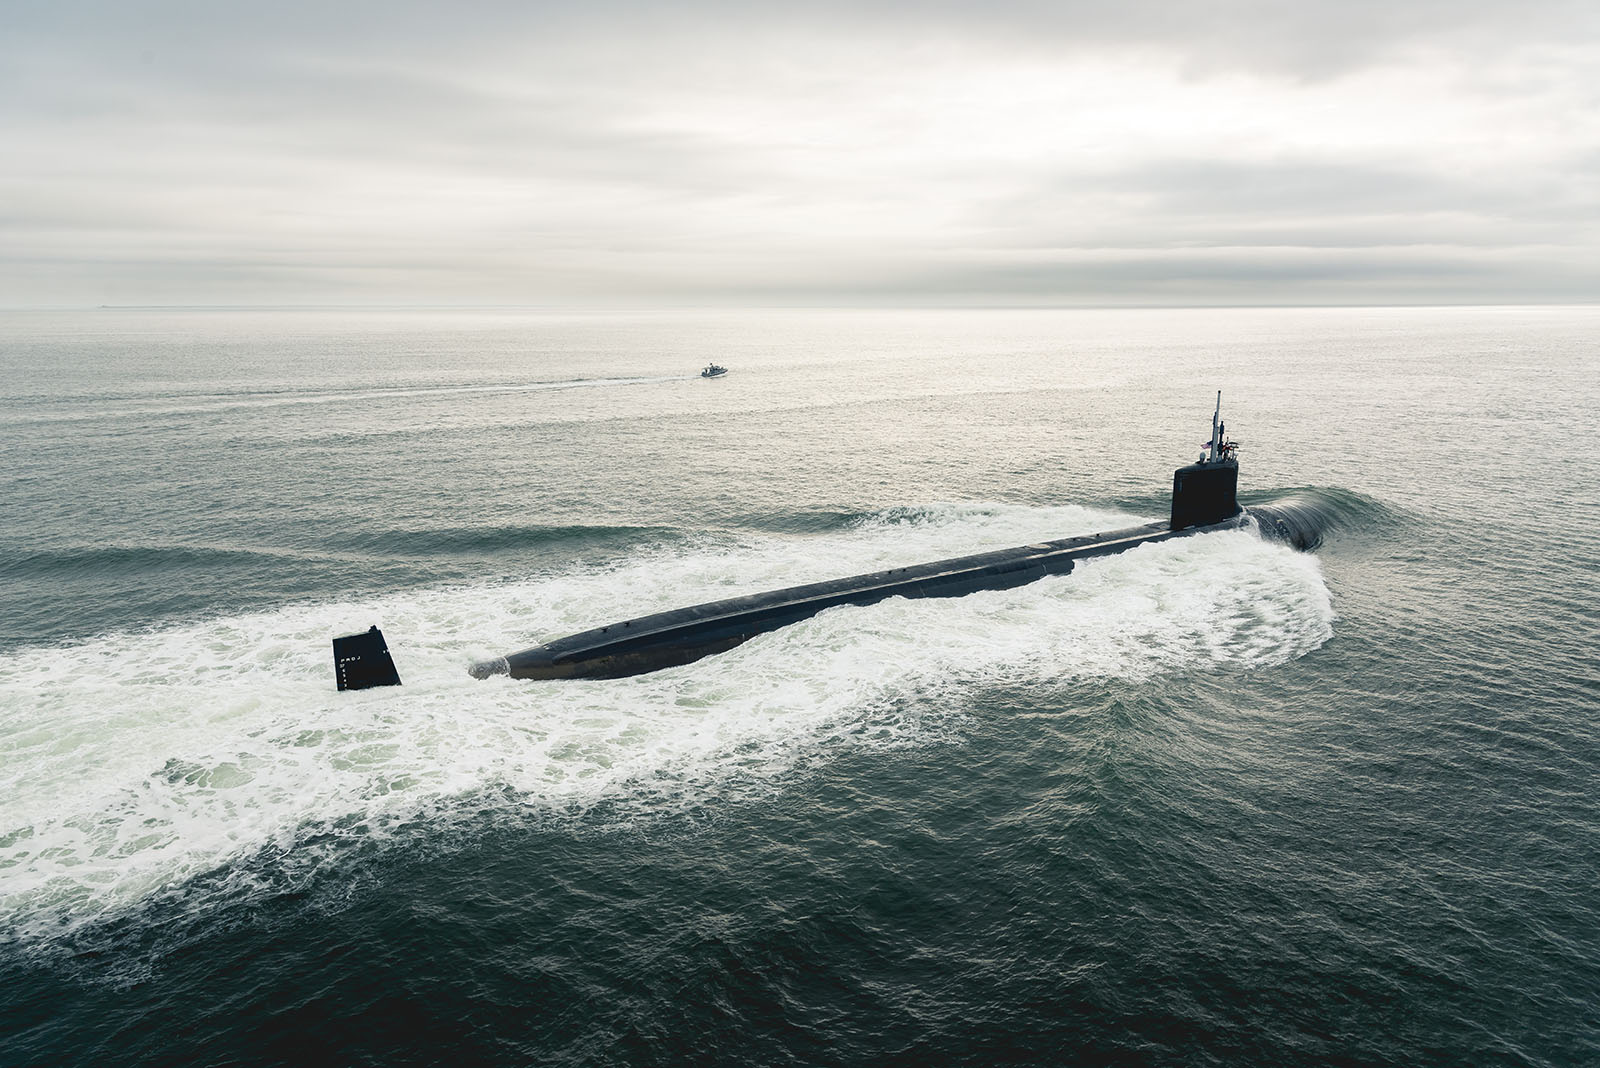 Indiana (SSN 789) departs for sea trials. The initial round of sea trials, known as alpha trials, provide the Virginia-class submarine an opportunity to test all systems and components.